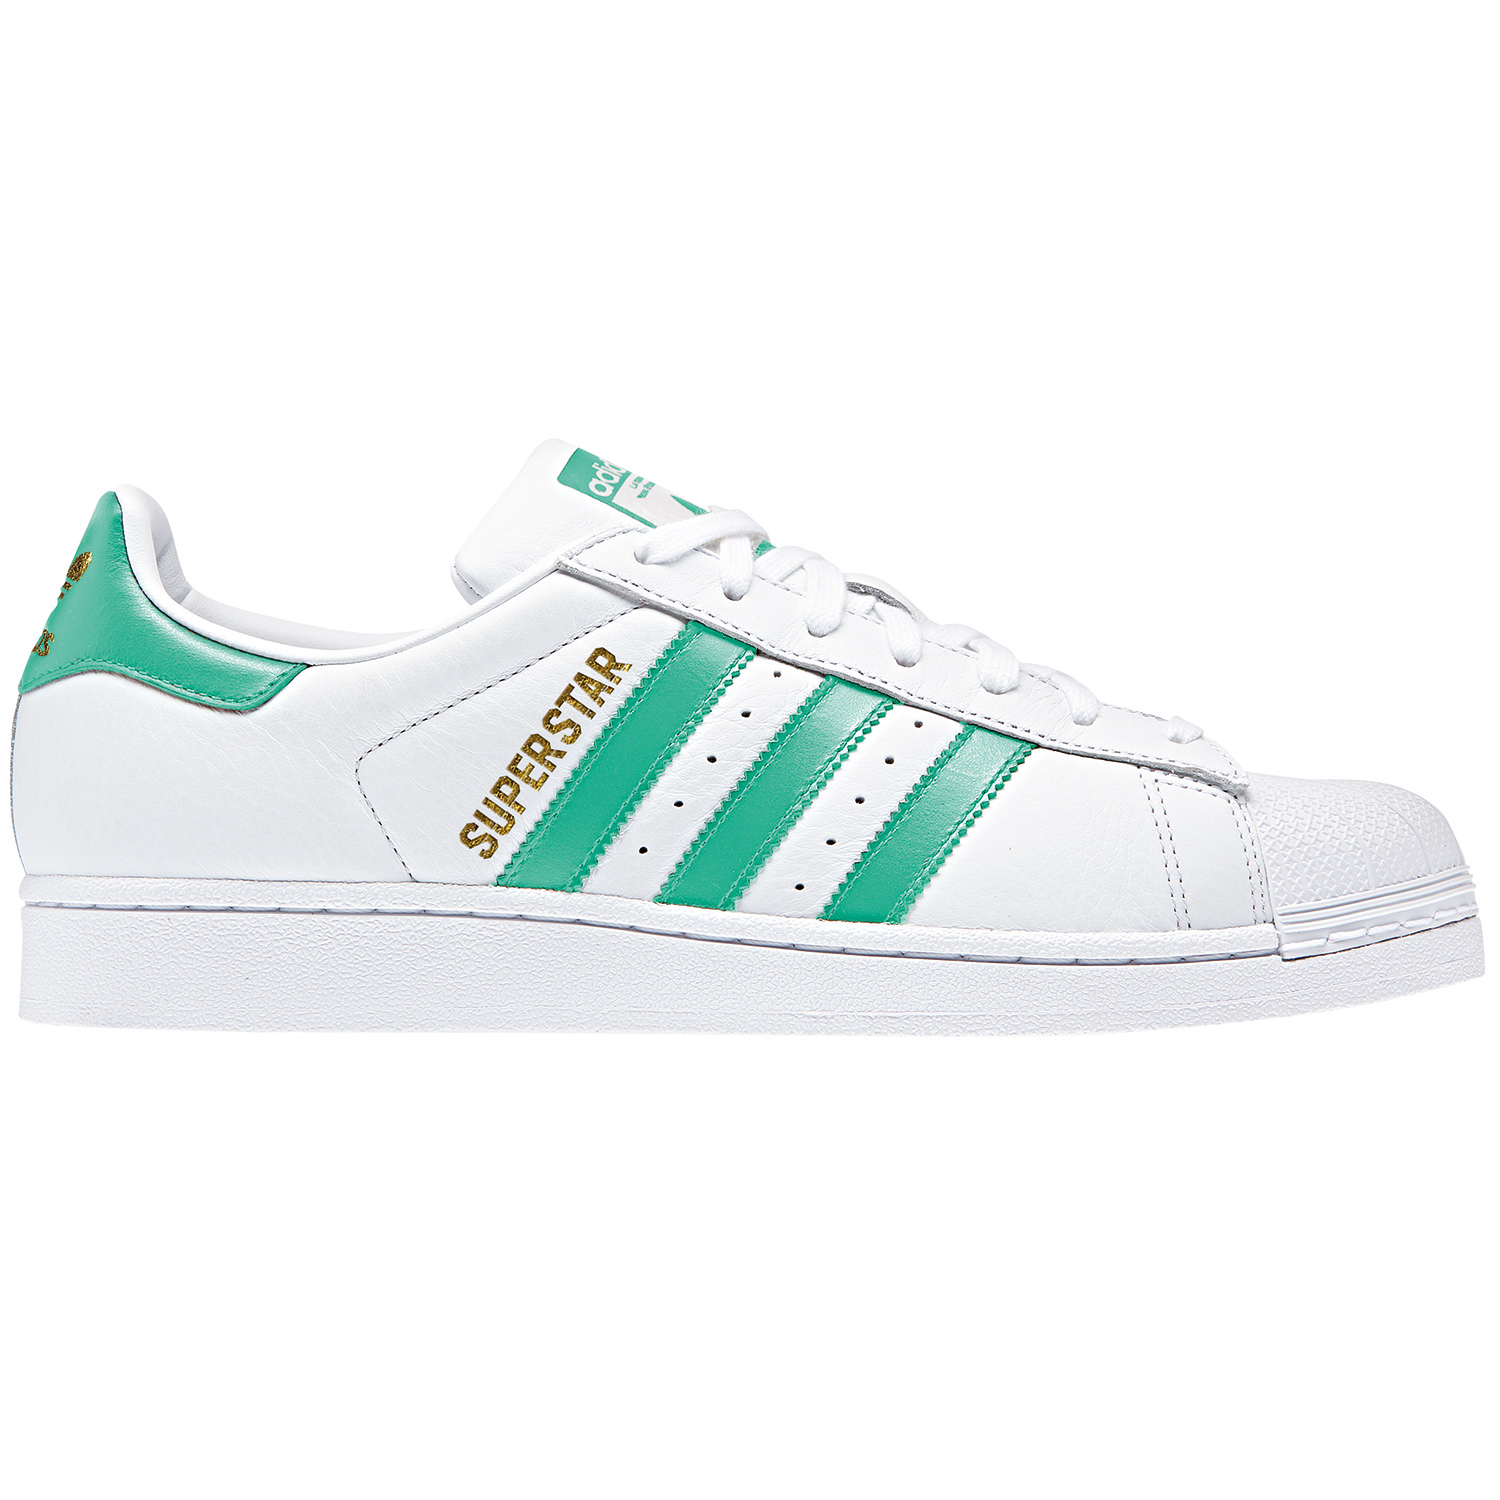 adidas Originals Superstar Damen Sneaker weiß grün B41995